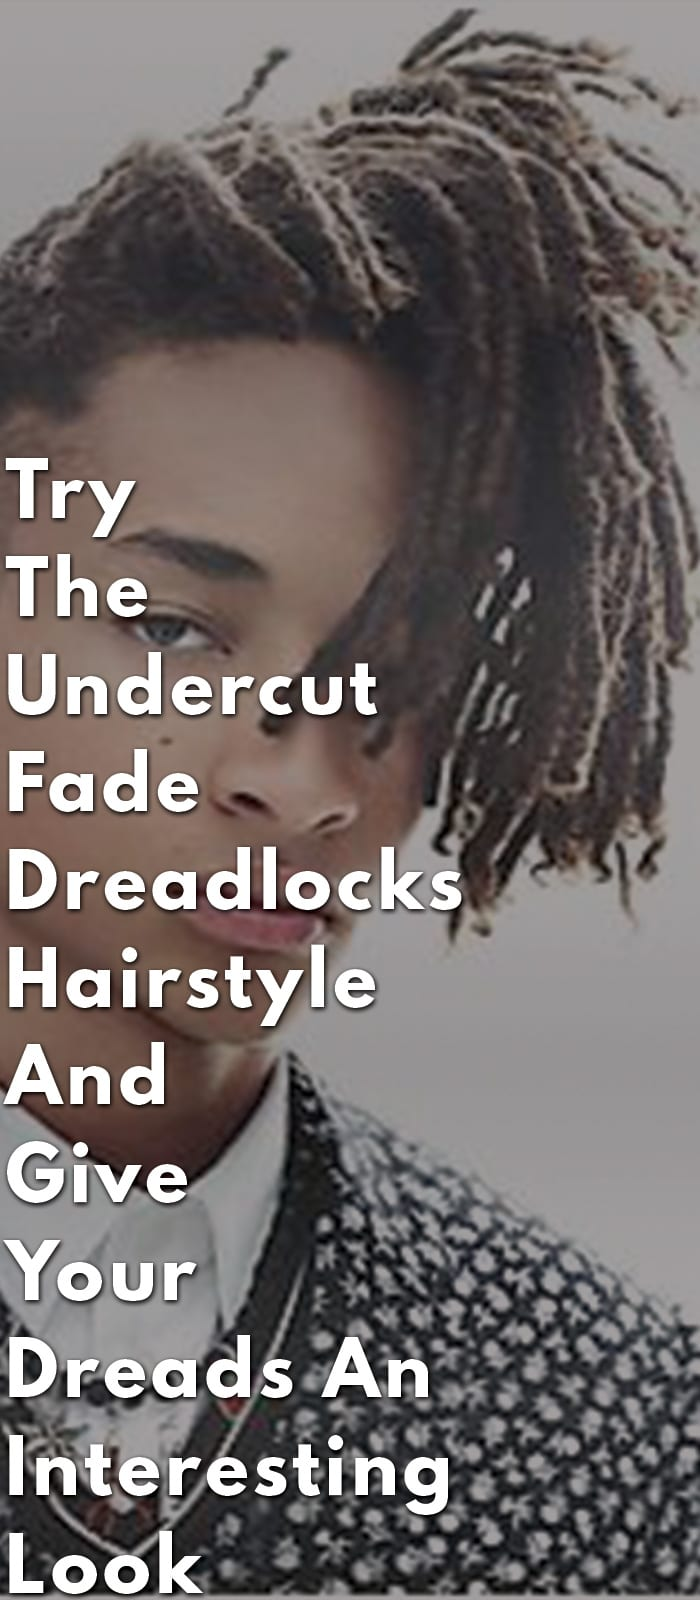 Try The Undercut Fade Dreadlocks Hairstyle